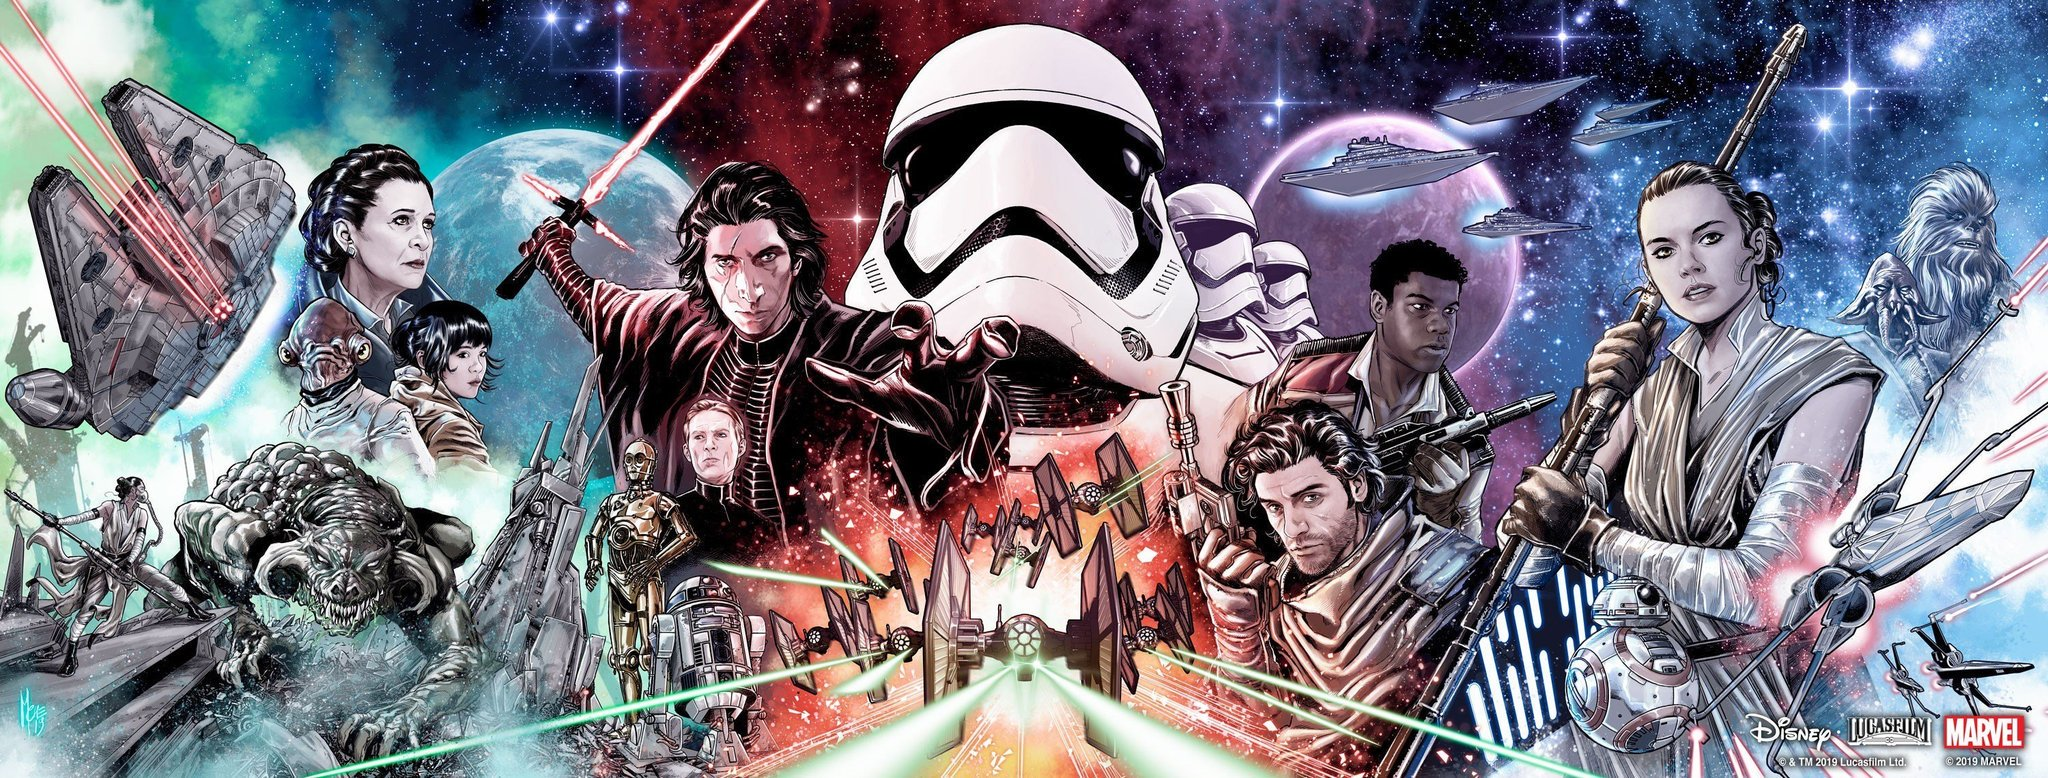 Journey To Star Wars: The Rise of Skywalker - Allegiance Review